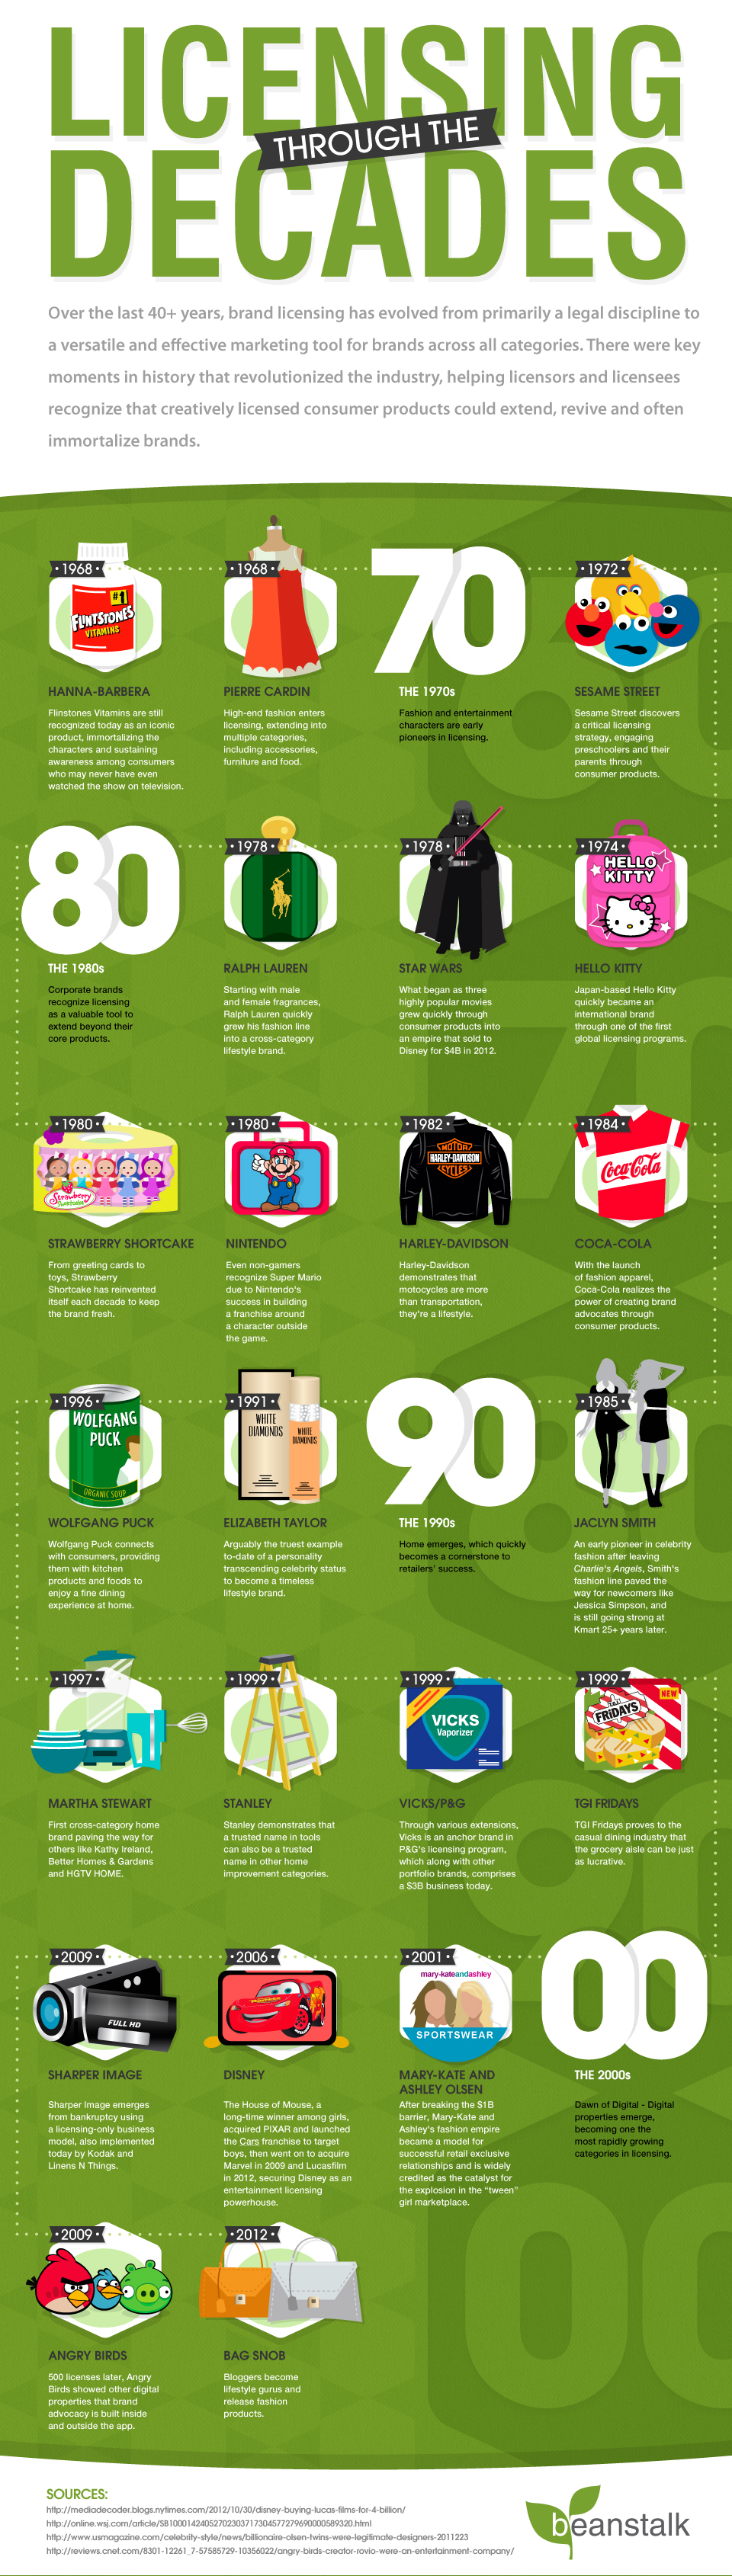 Licensing Through The Decades: A Brand Licensing Timeline